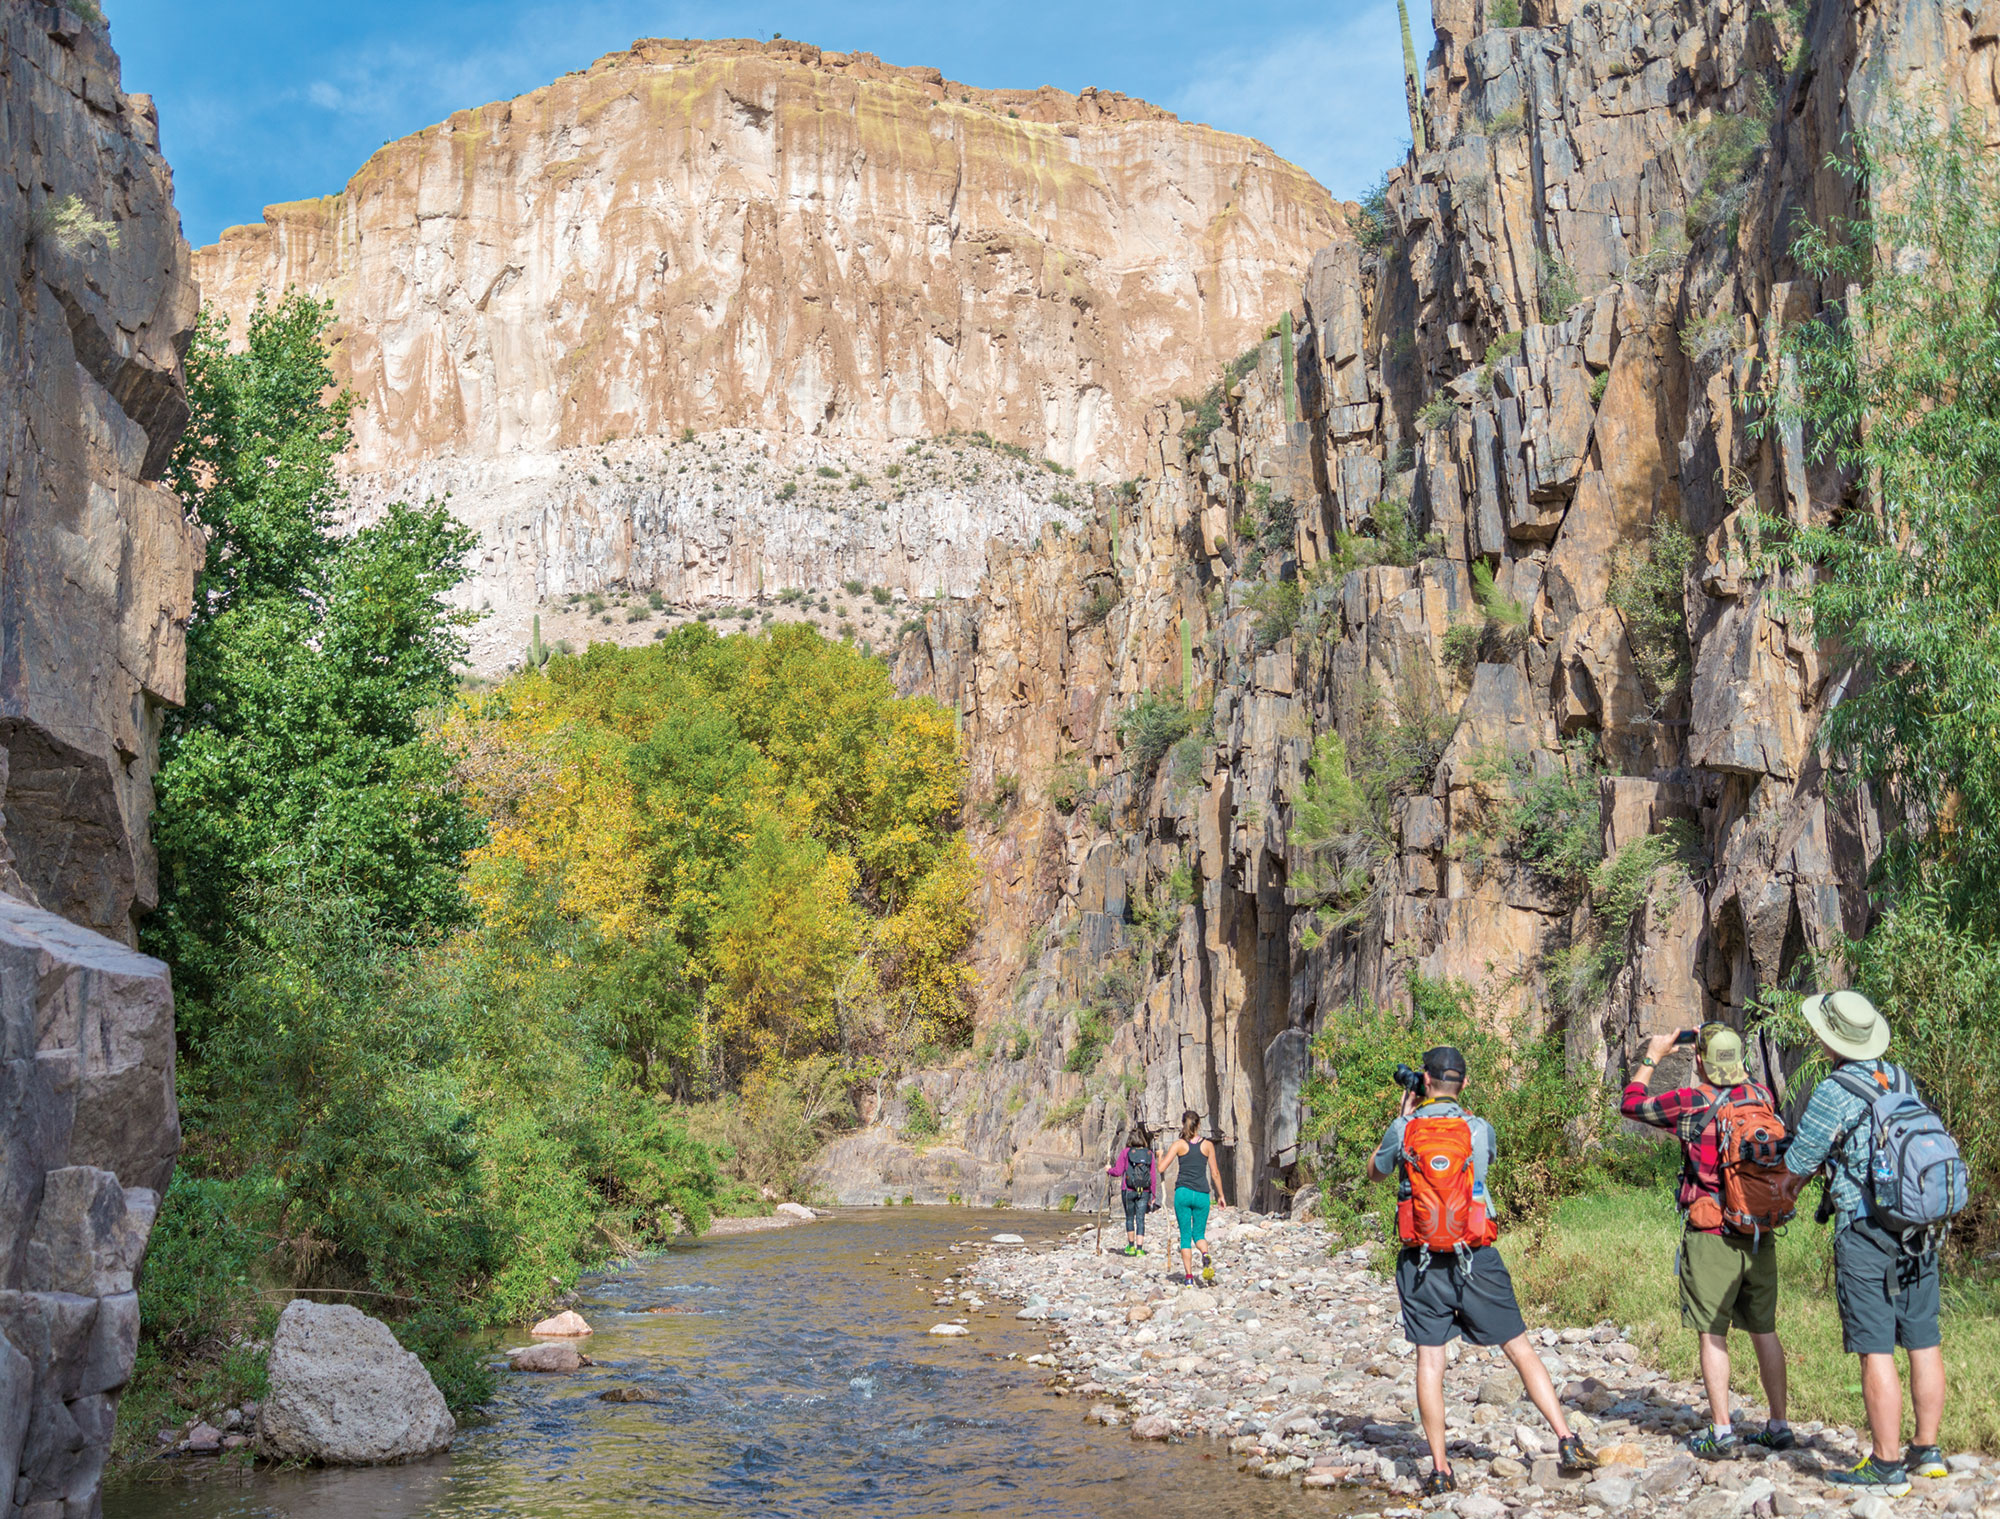 Hiking in Aravaipa Canyon Wilderness; Photo by Jack H. Taylor